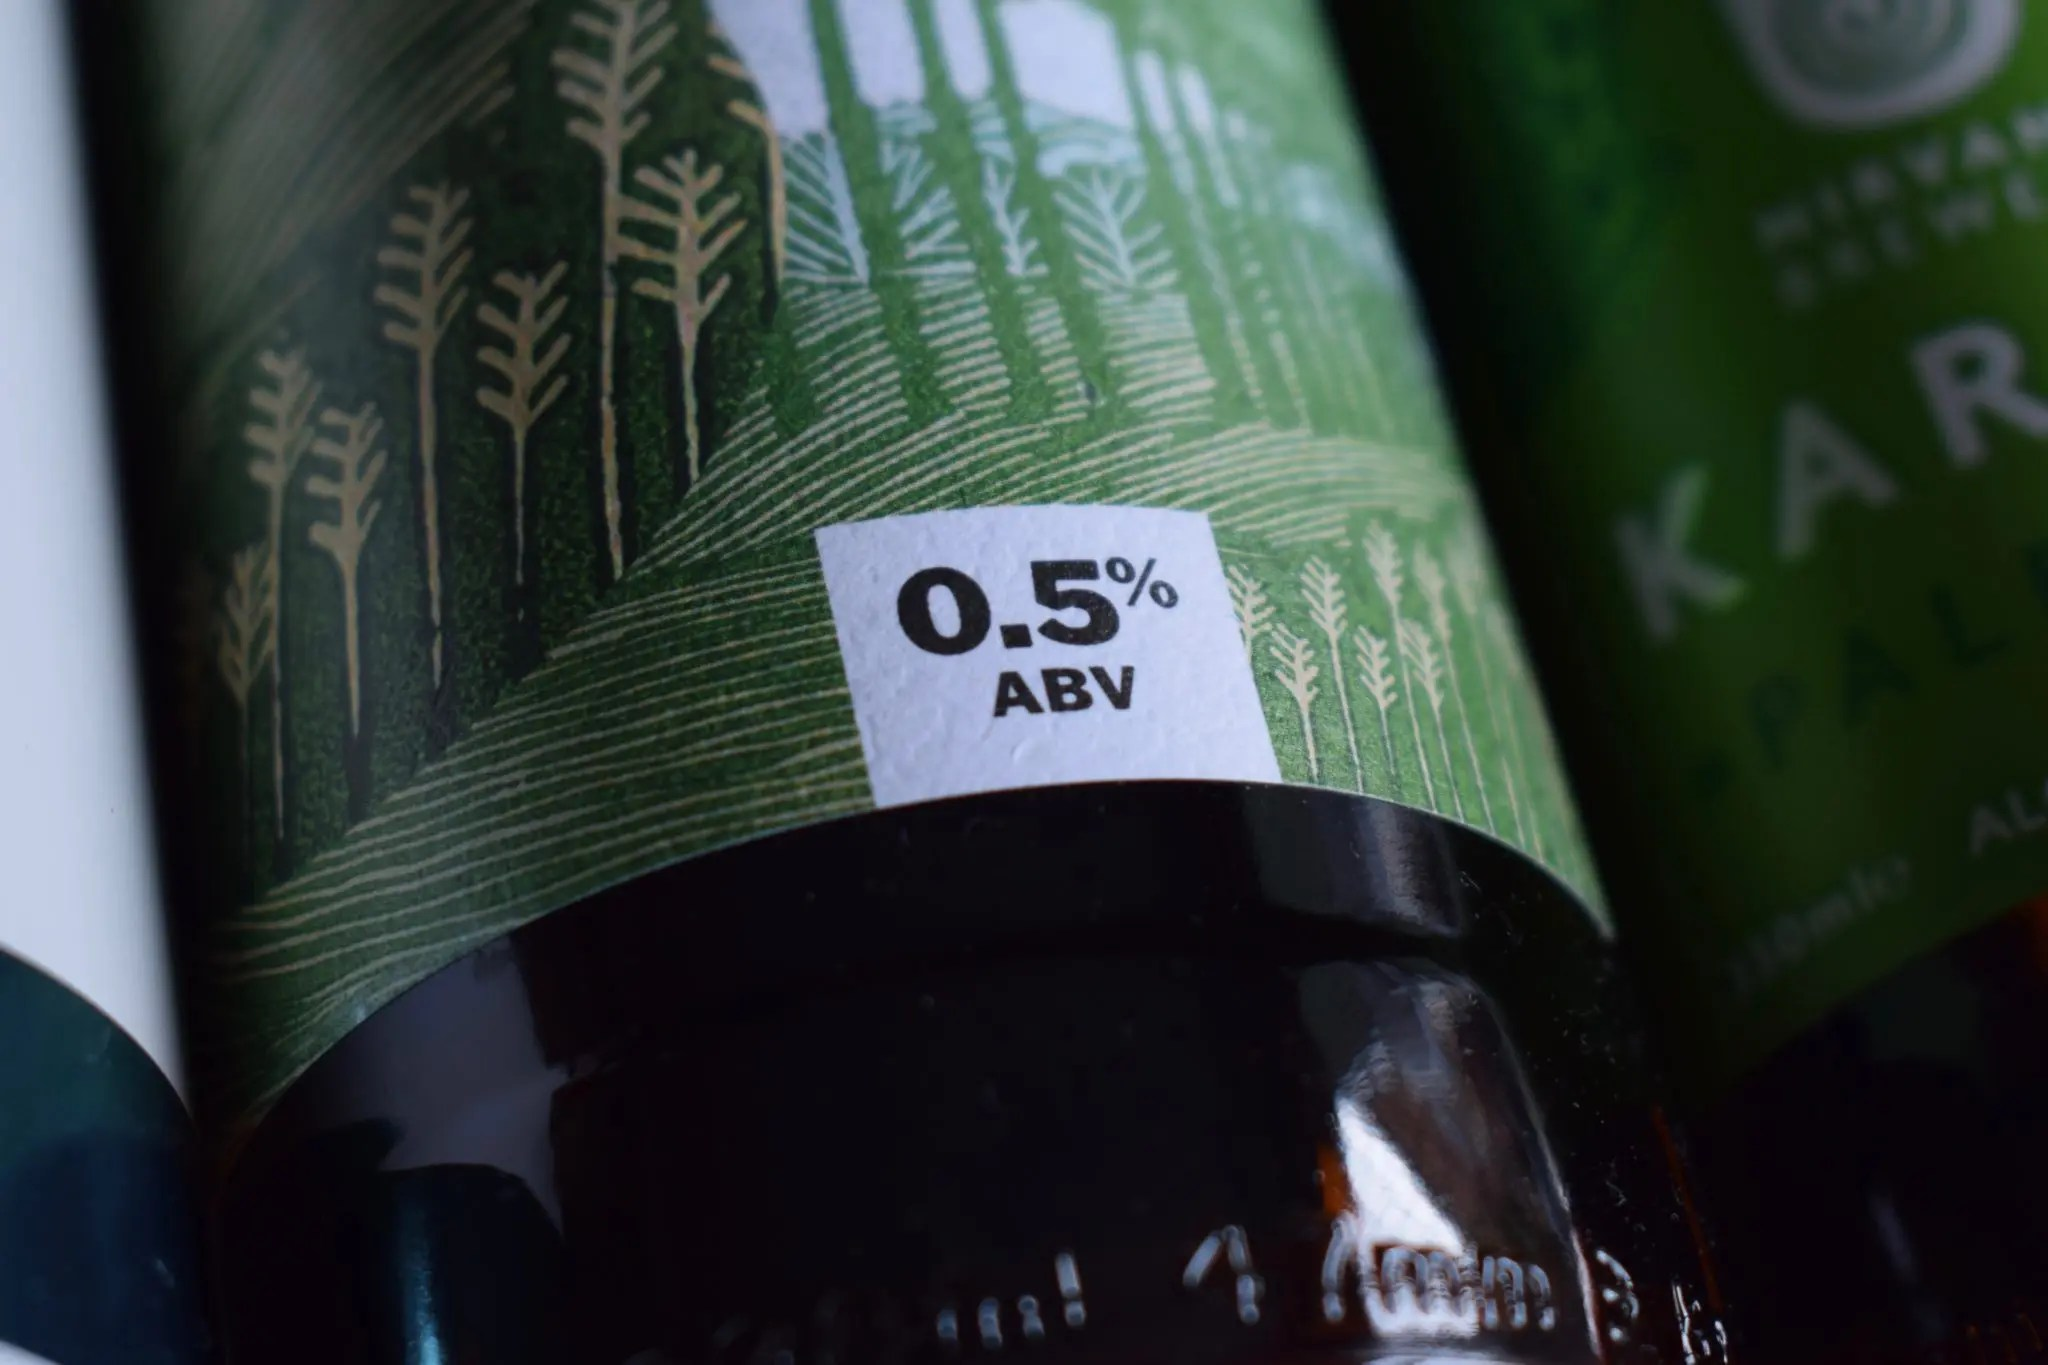 Is 0 5% ABV Alcohol-Free?